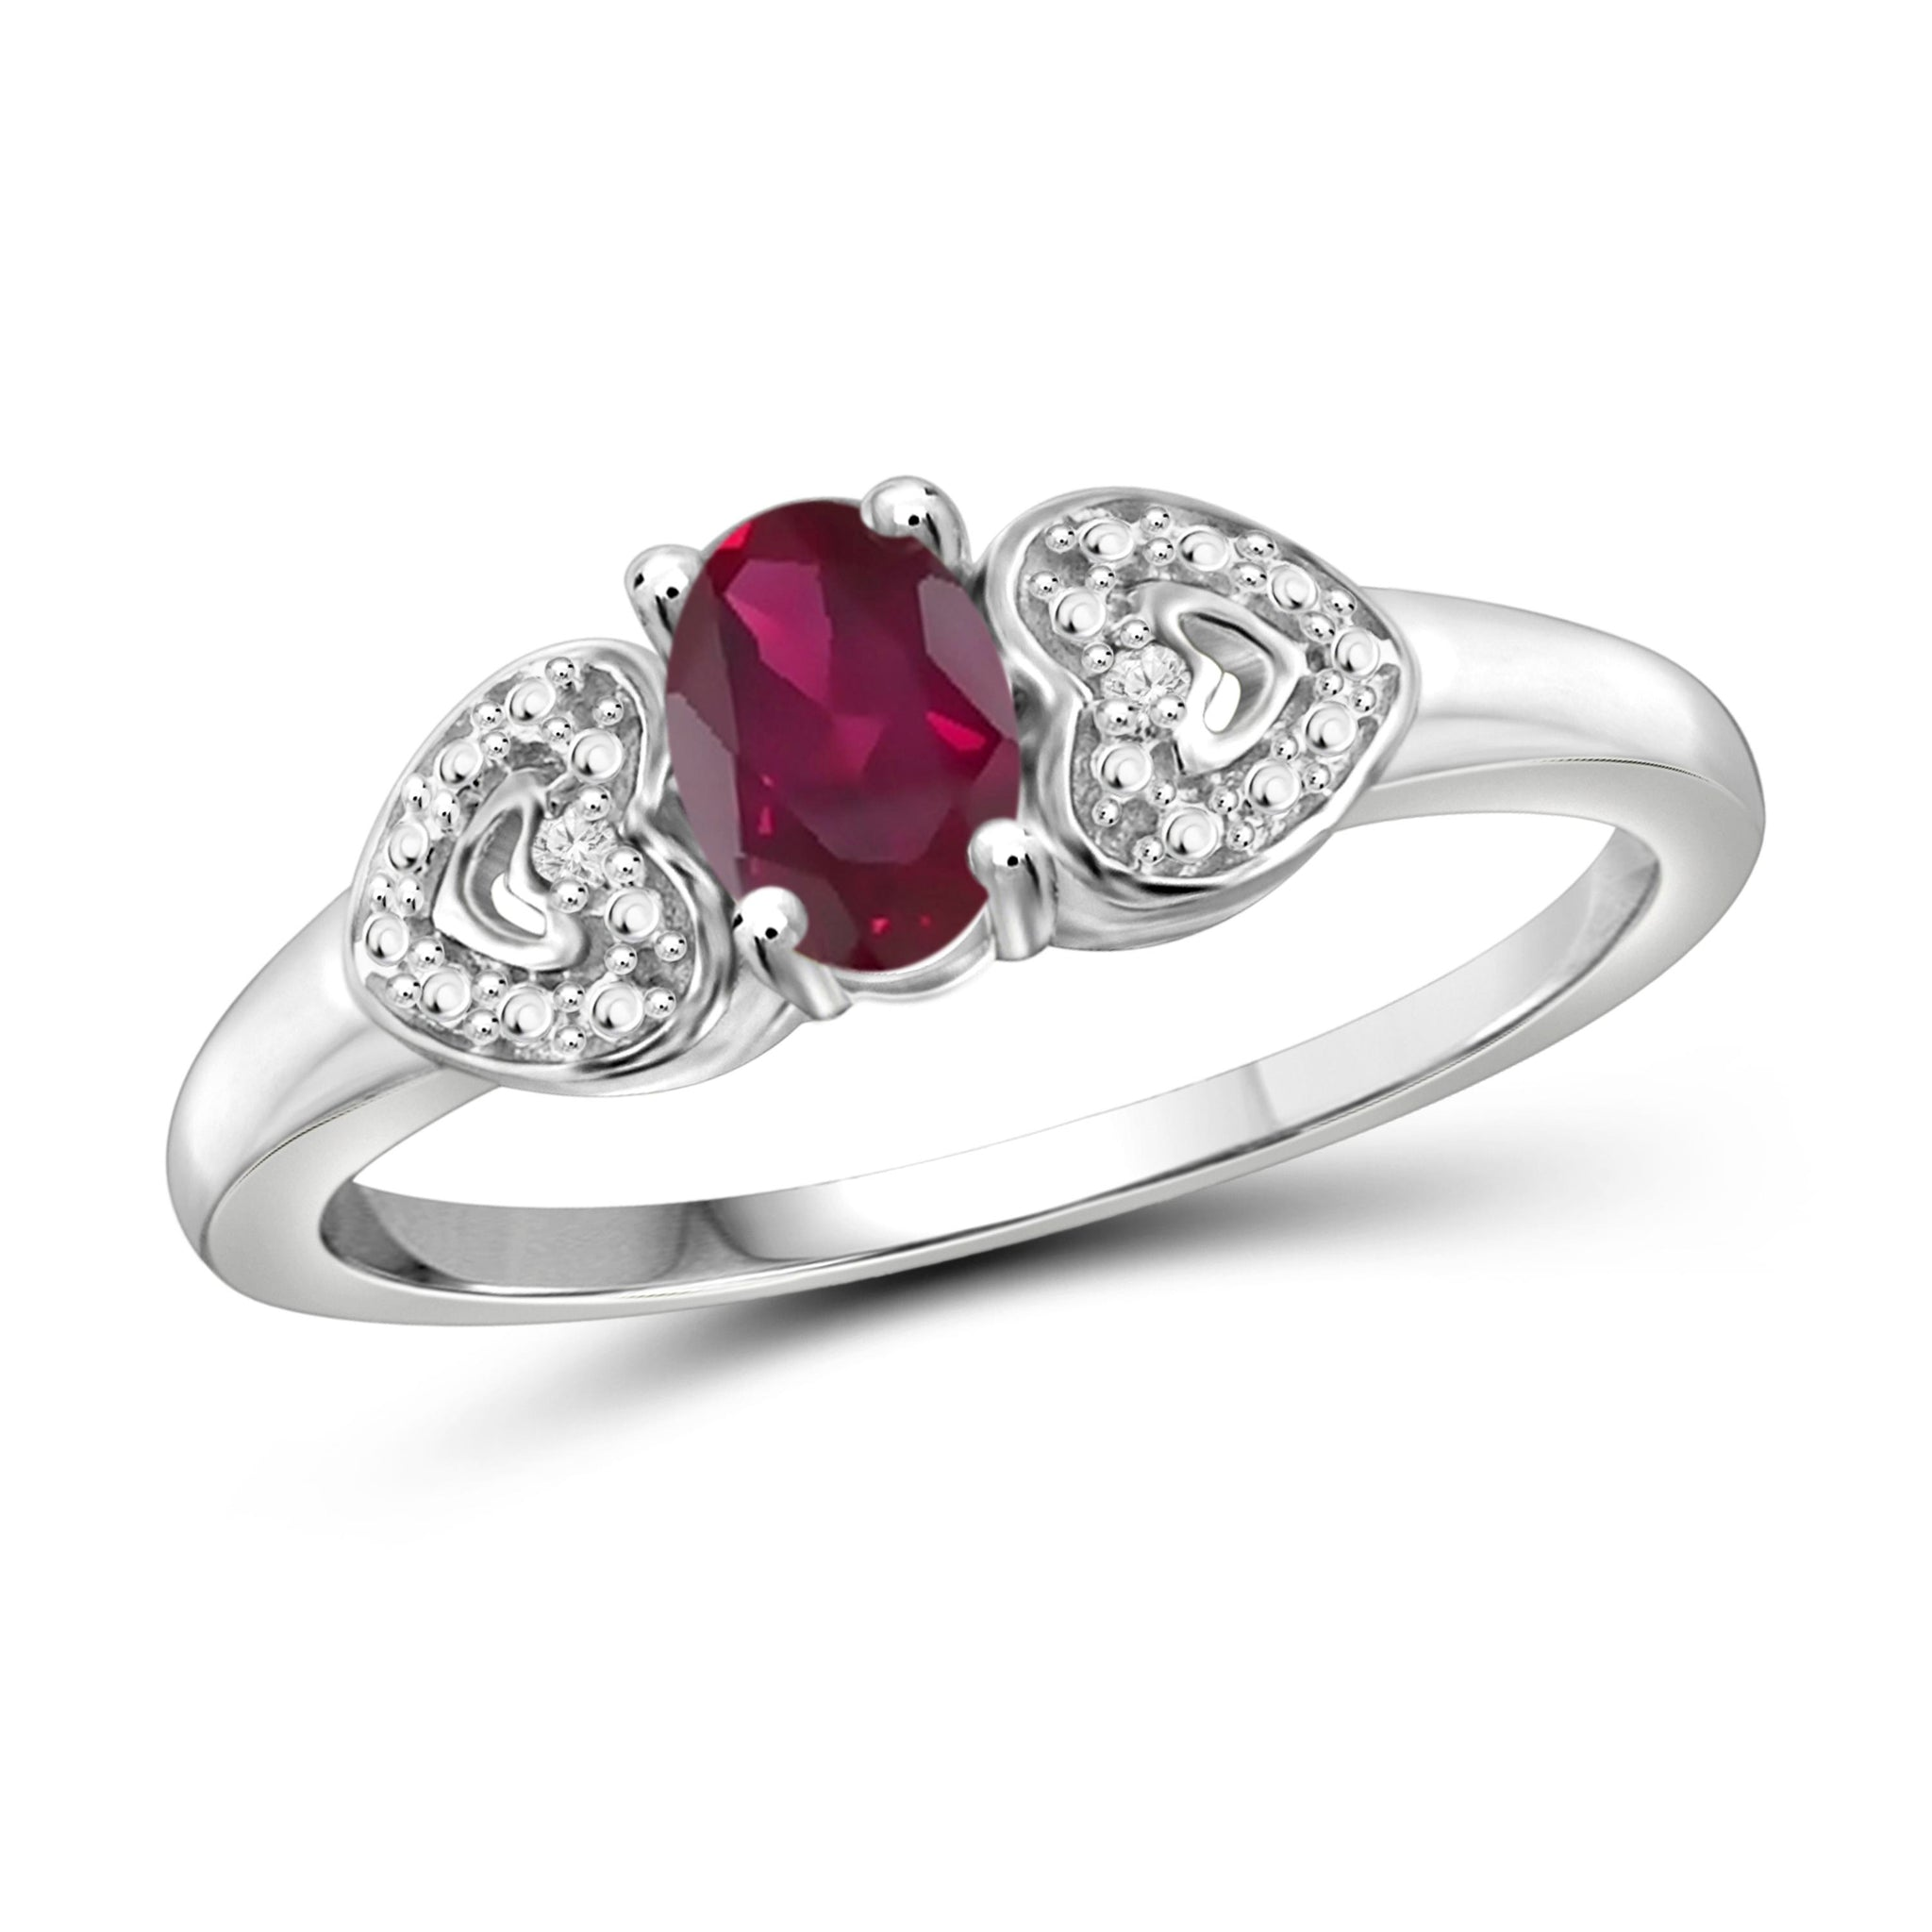 JewelersClub 0.45 Carat T.G.W. Ruby and White Diamond Accent Sterling Silver Ring - Assorted Colors